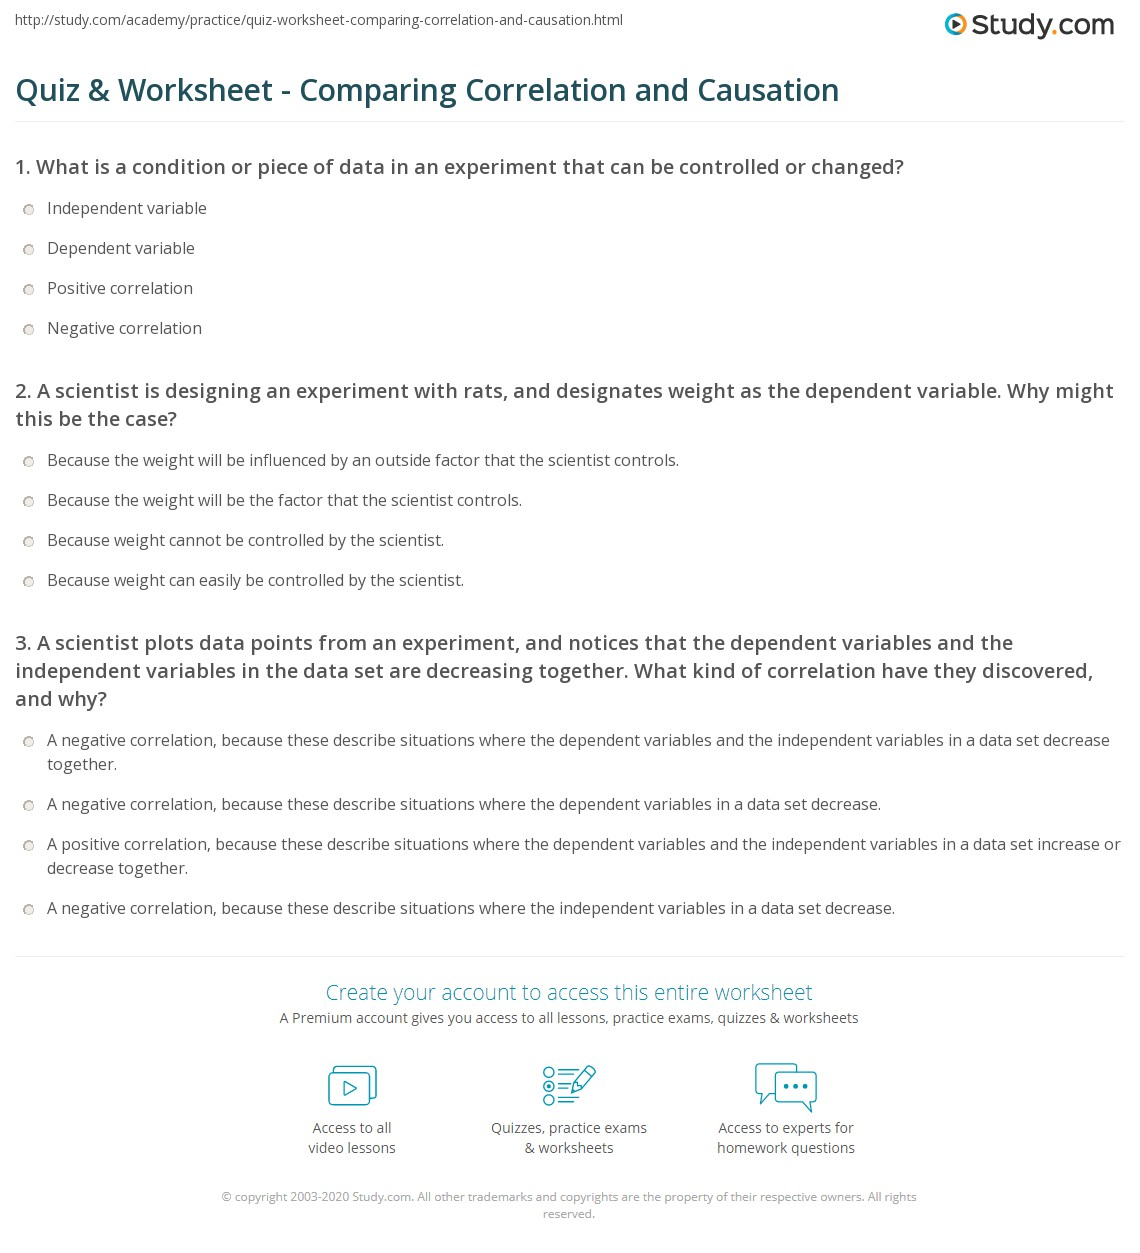 Aldiablosus  Terrific Quiz Amp Worksheet  Comparing Correlation And Causation  Studycom With Heavenly Print Correlation Vs Causation Differences Amp Definition Worksheet With Comely Apple Worksheets For Kindergarten Also Tall Tale Worksheets In Addition Solid Geometry Worksheets And Story Of Stuff Worksheet As Well As Line Plot Graph Worksheets Additionally Pronoun Worksheets For Nd Grade From Studycom With Aldiablosus  Heavenly Quiz Amp Worksheet  Comparing Correlation And Causation  Studycom With Comely Print Correlation Vs Causation Differences Amp Definition Worksheet And Terrific Apple Worksheets For Kindergarten Also Tall Tale Worksheets In Addition Solid Geometry Worksheets From Studycom